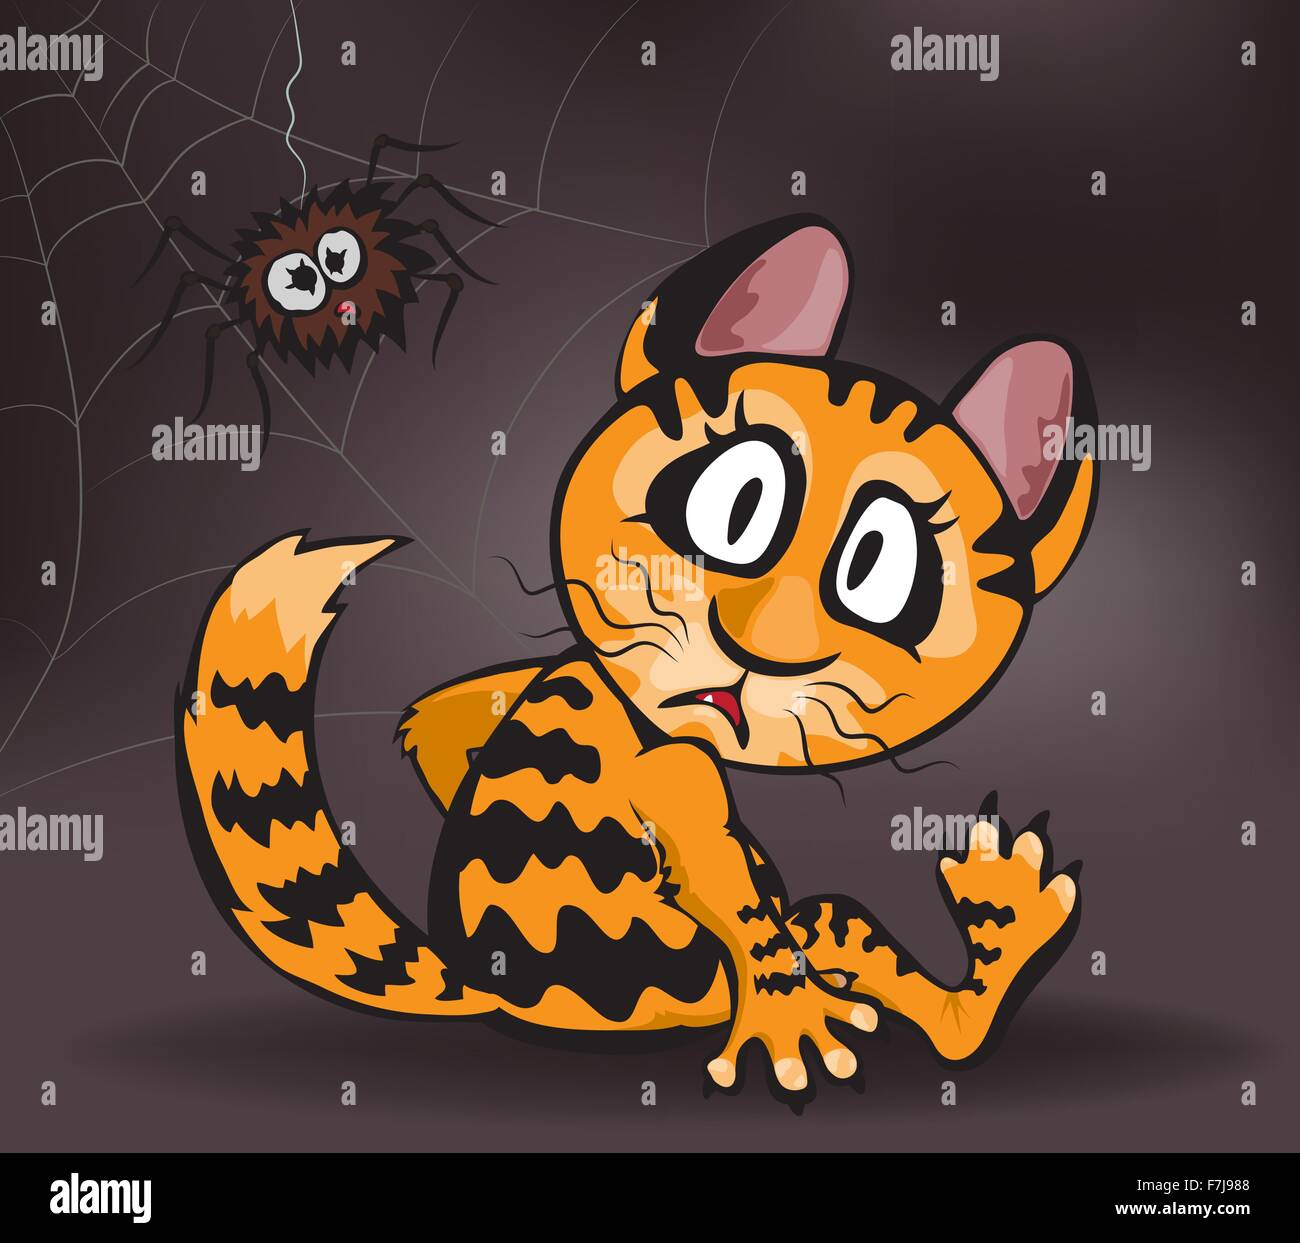 Ginger cat and spider on a dark brown background, vector illustration Stock Vector